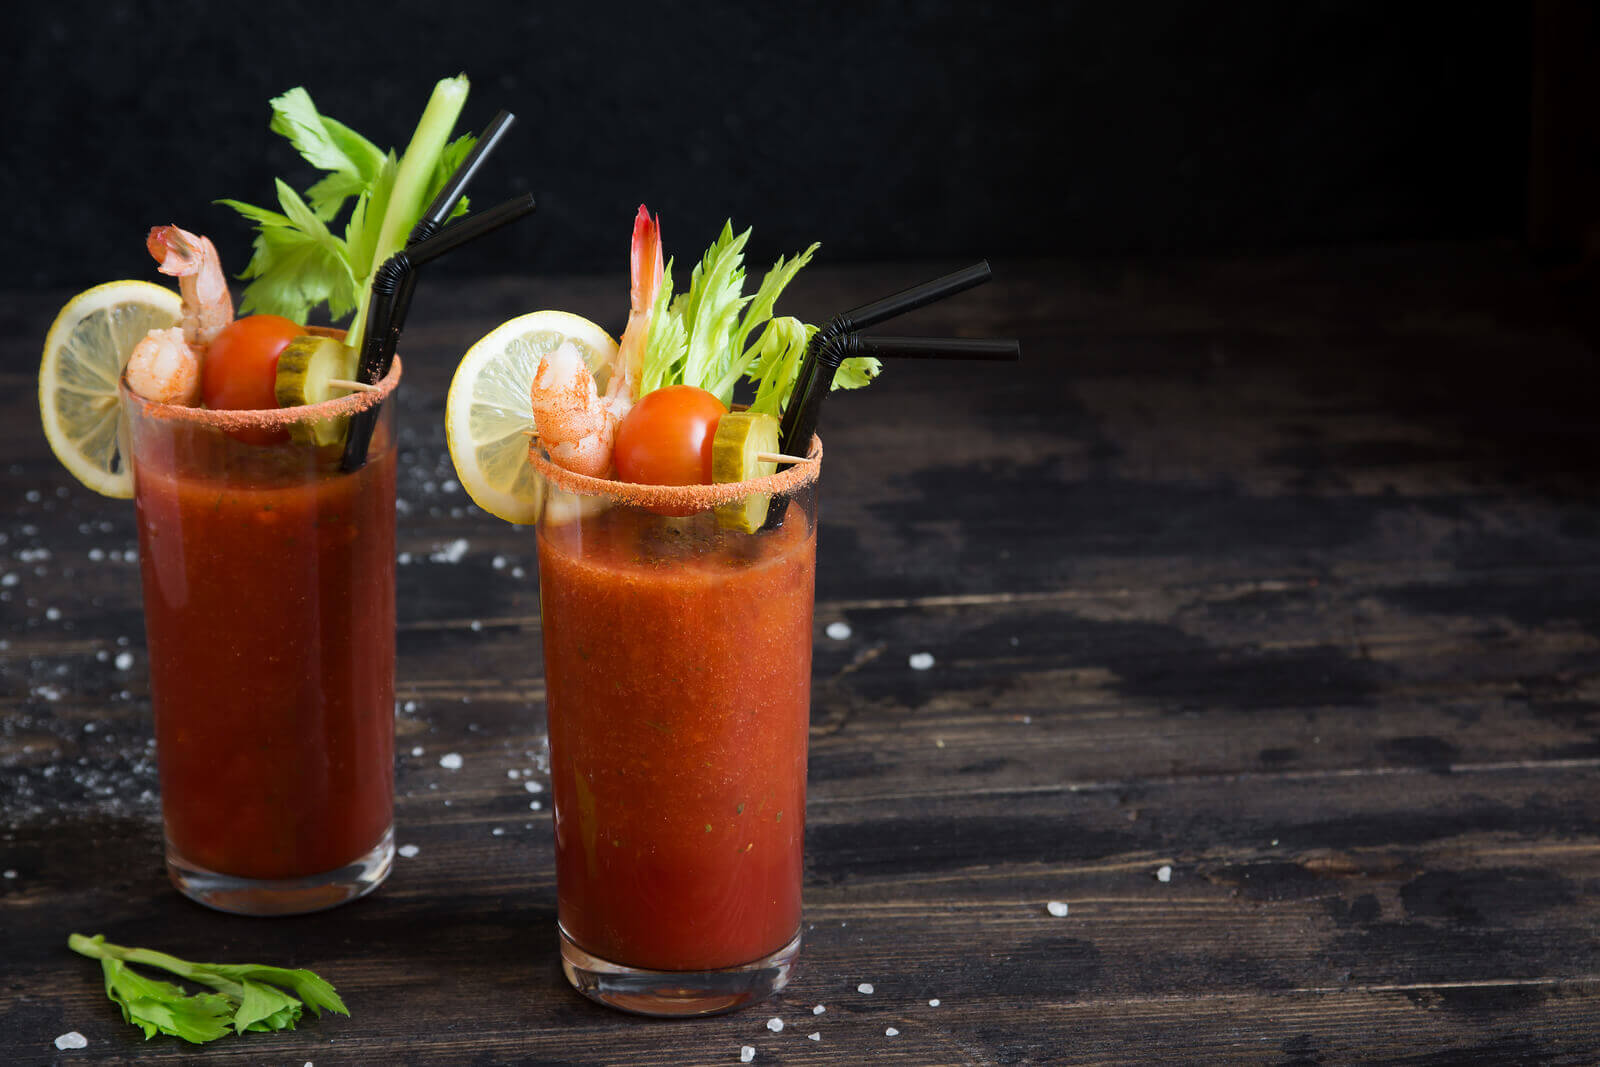 Happy New Year! A Bloody Mary Brunch recipe for 2019